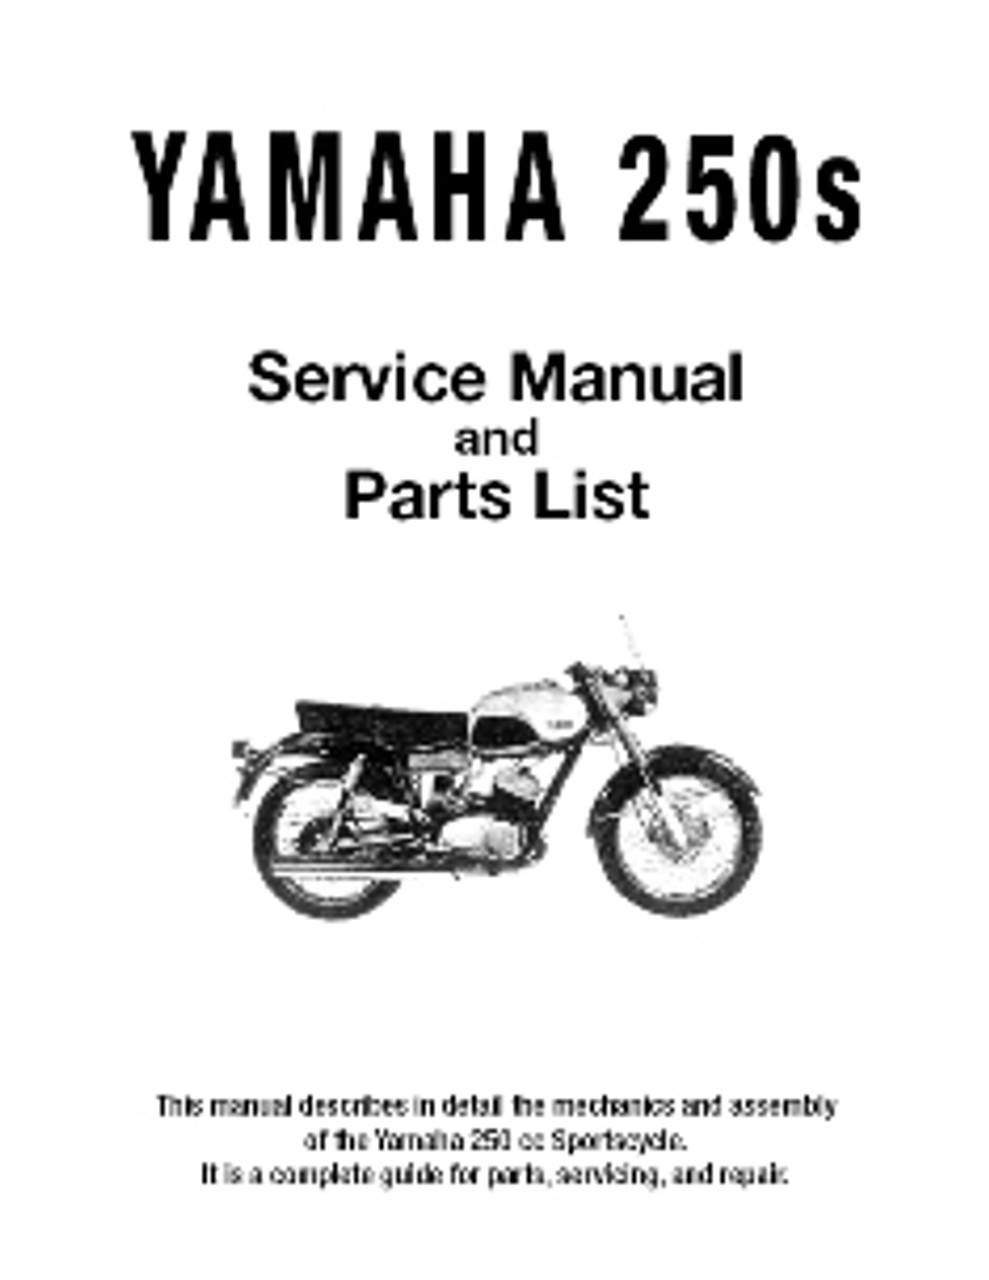 yamaha sports yds2 factory service and parts manual hvccycle rh hvccycle net Yamaha Yd2 Yamaha Yd2